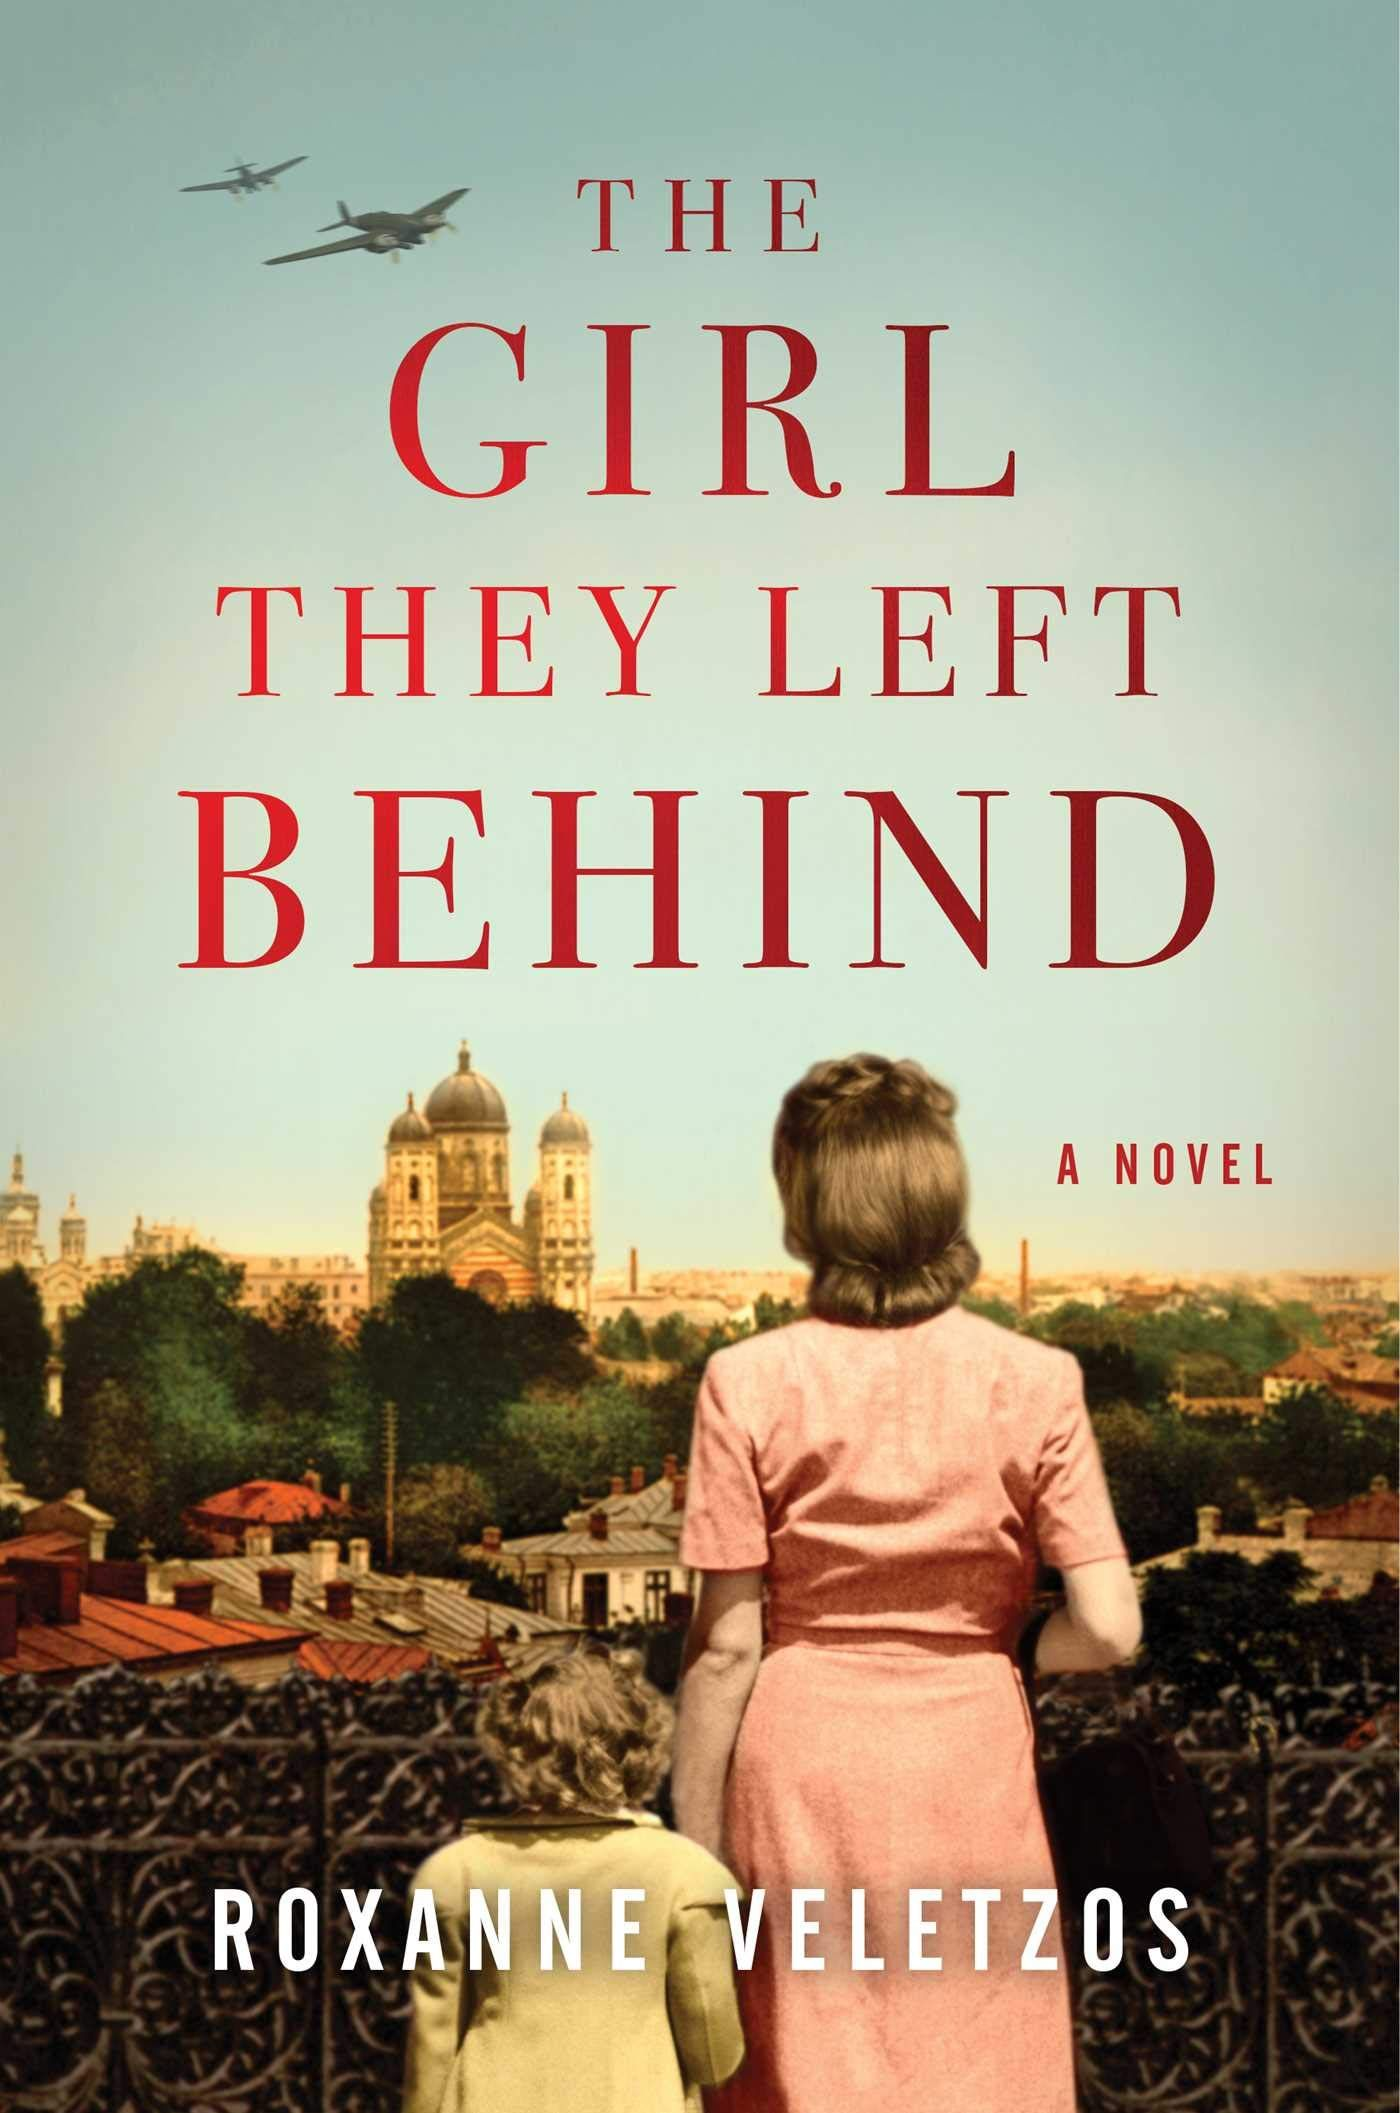 The Girl They Left Behind Book Review World War II Fiction by Roxanne Veletzos